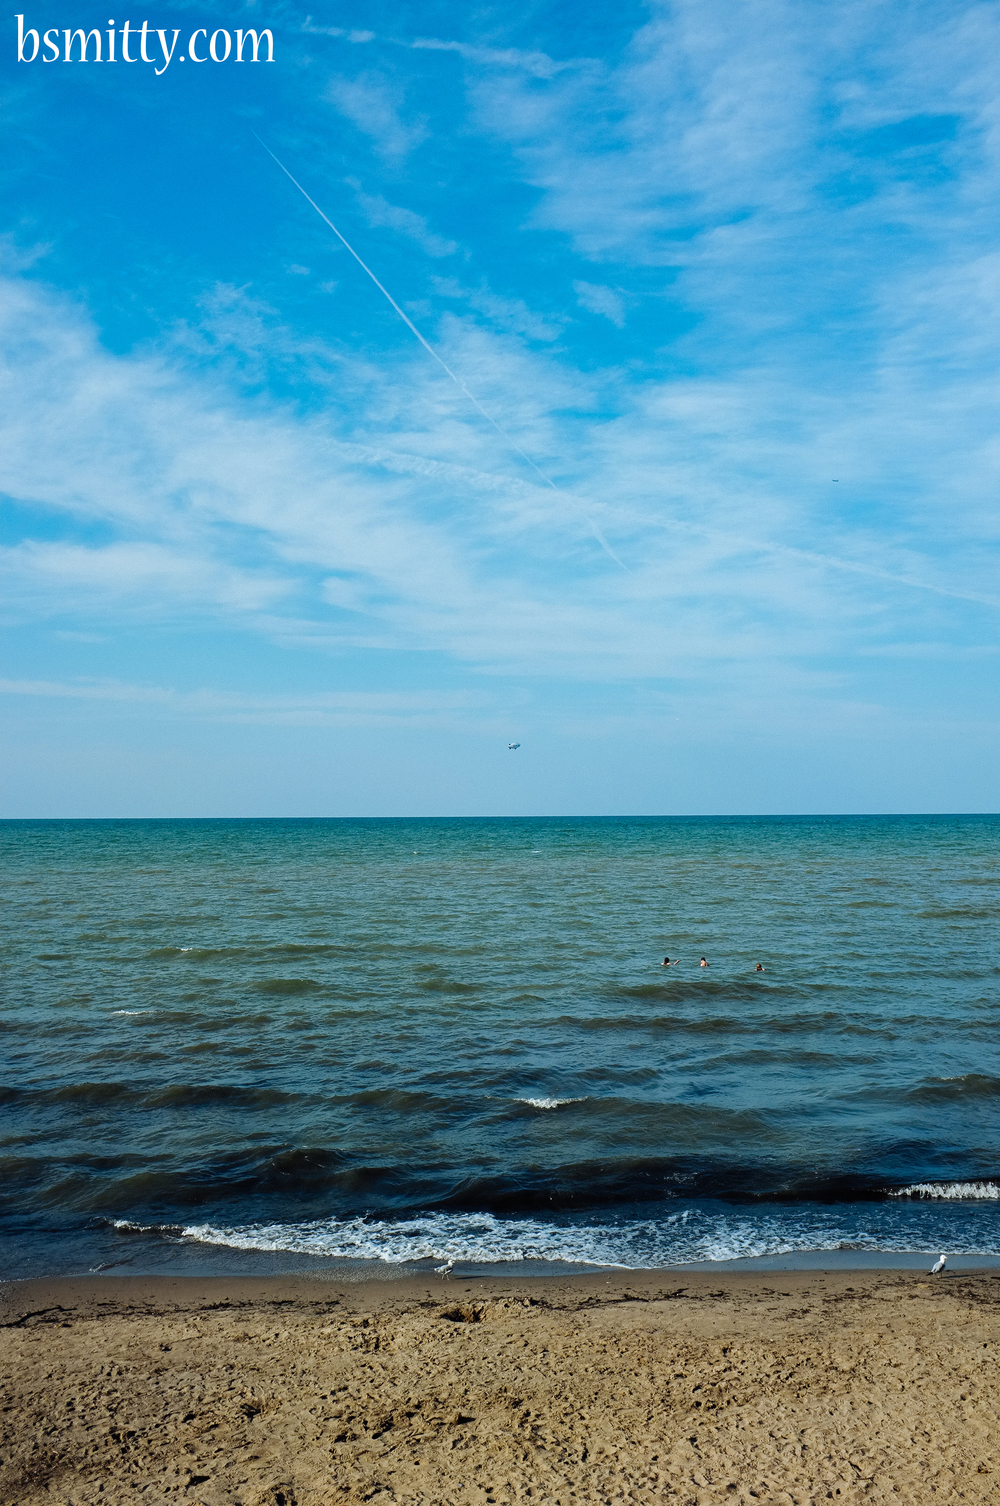 Are you stuck in your house trying to not go mad through this long winter? This beautiful image of Lake Erie would bring some good vibes hanging on your wall. Print is available starting at only $8 with free U.S. shipping  CLICK HERE